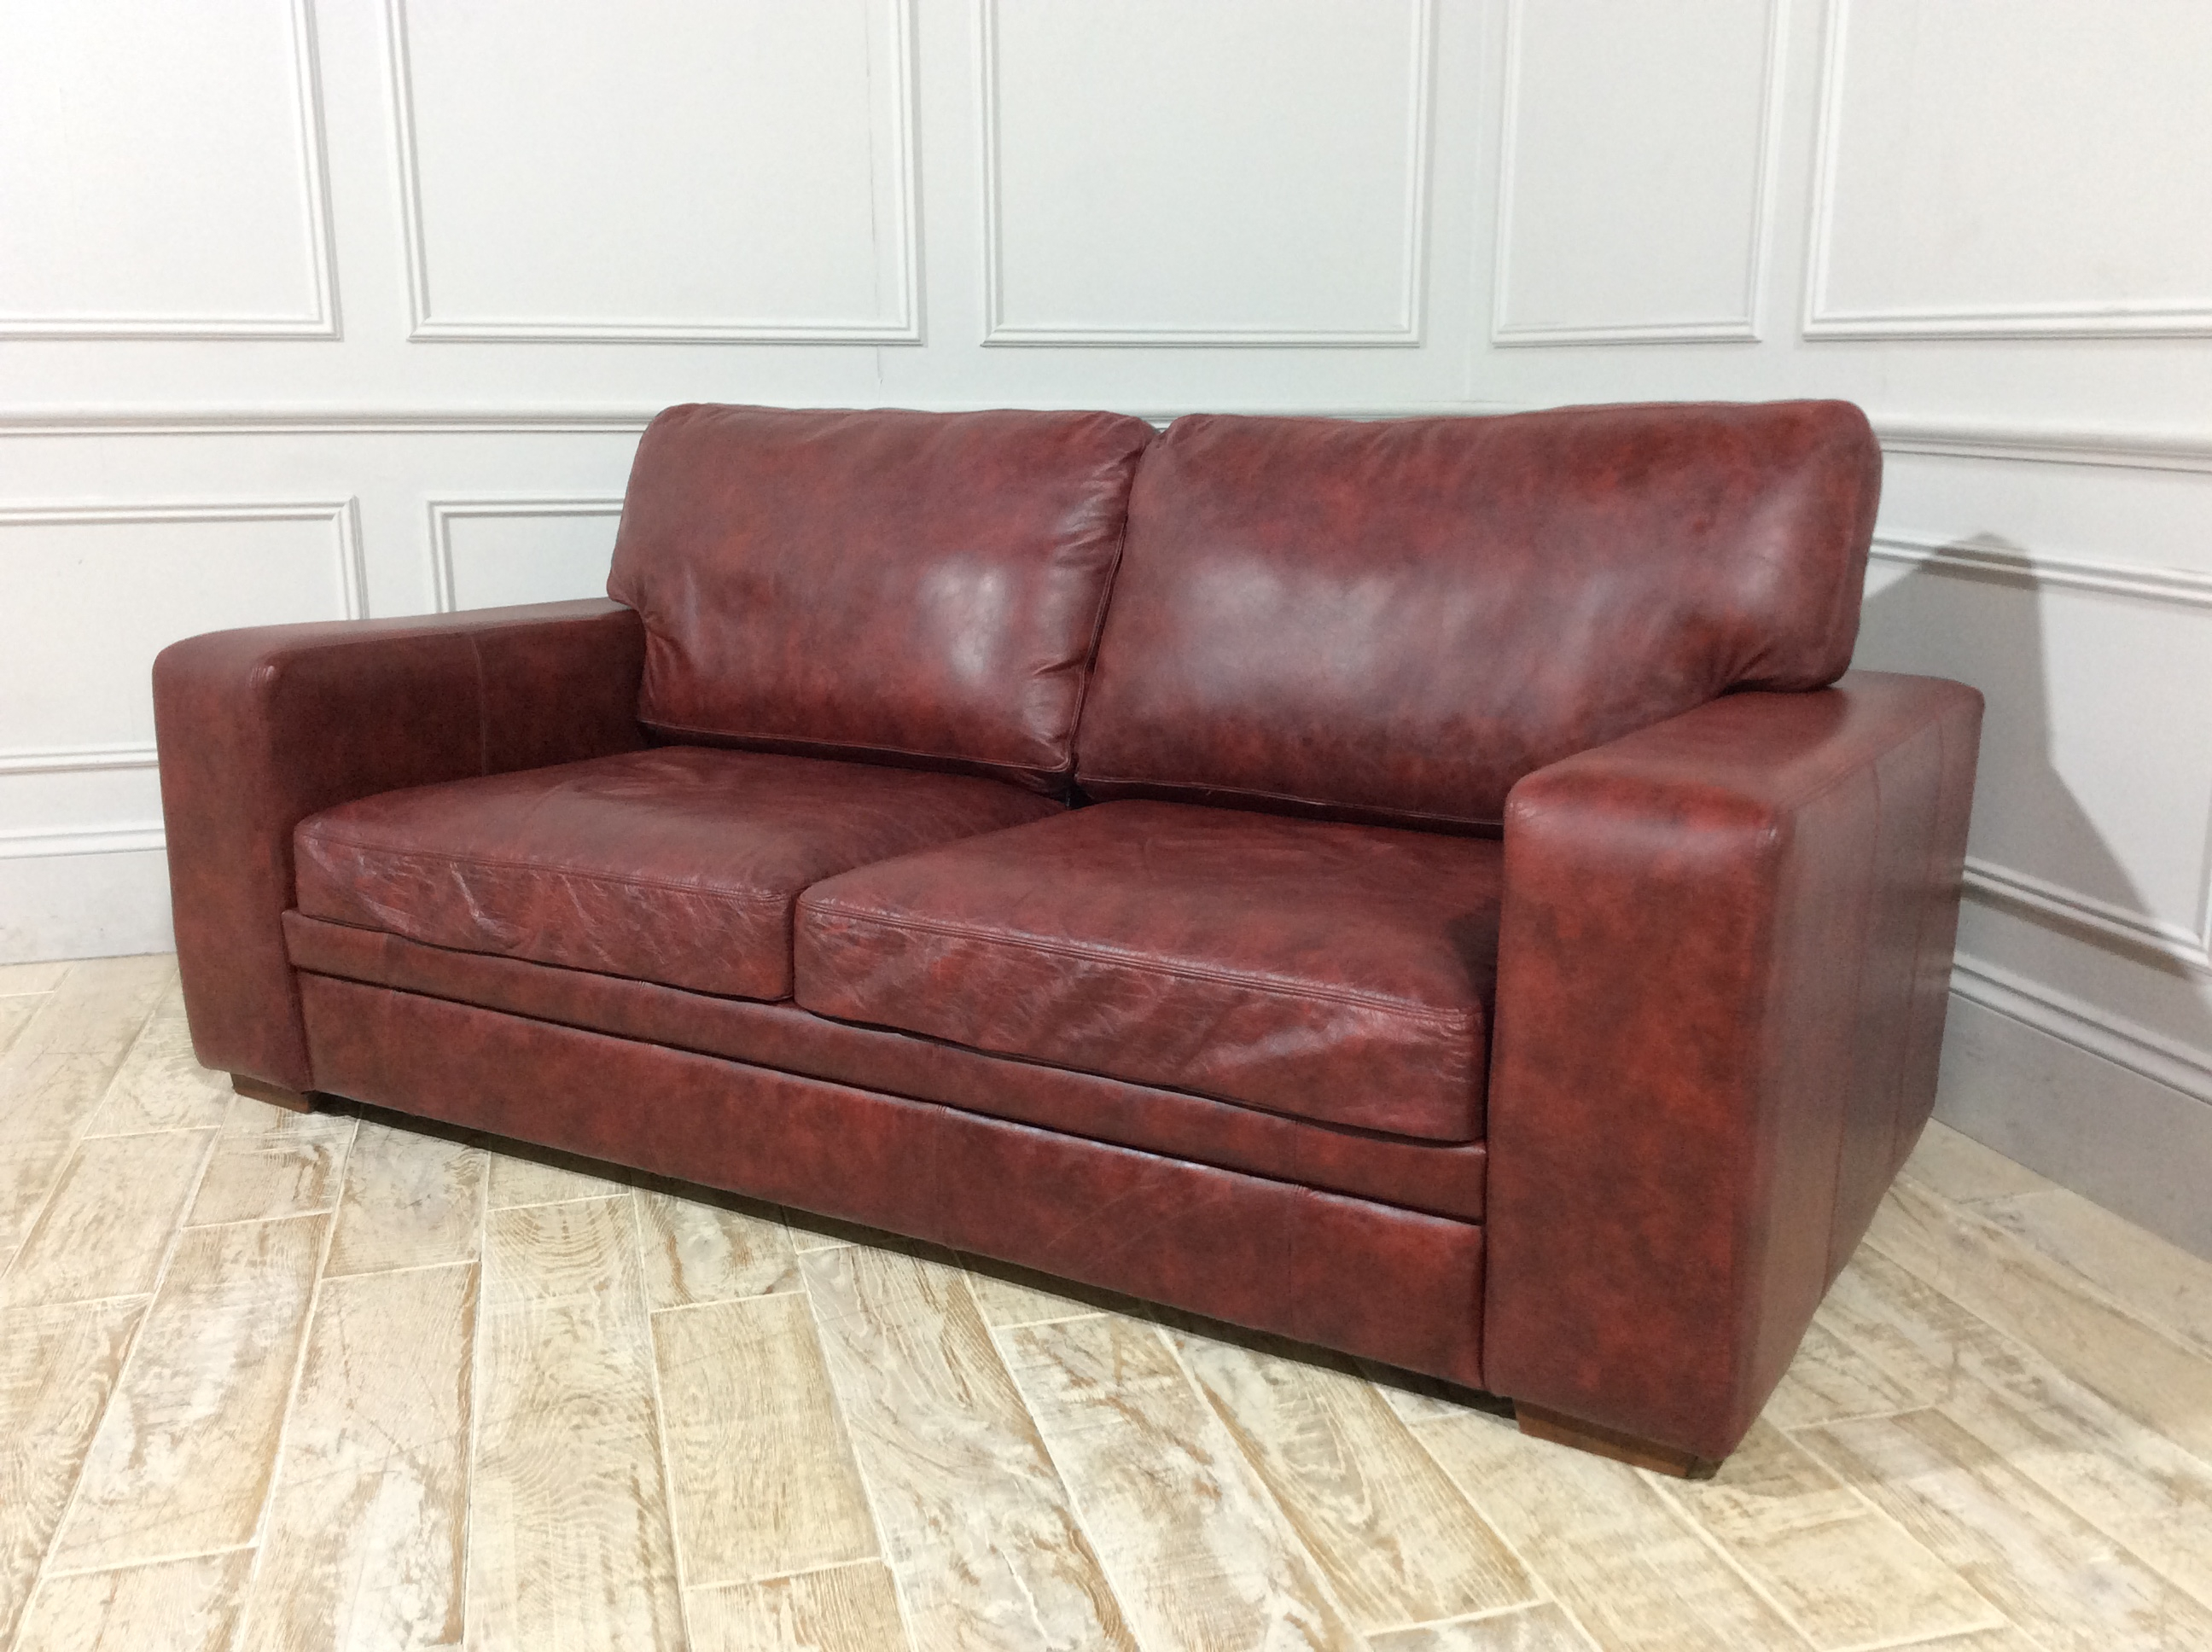 Sloane 3 Seater Sofa Bed in Distressed Vintage Aniline Oxblood